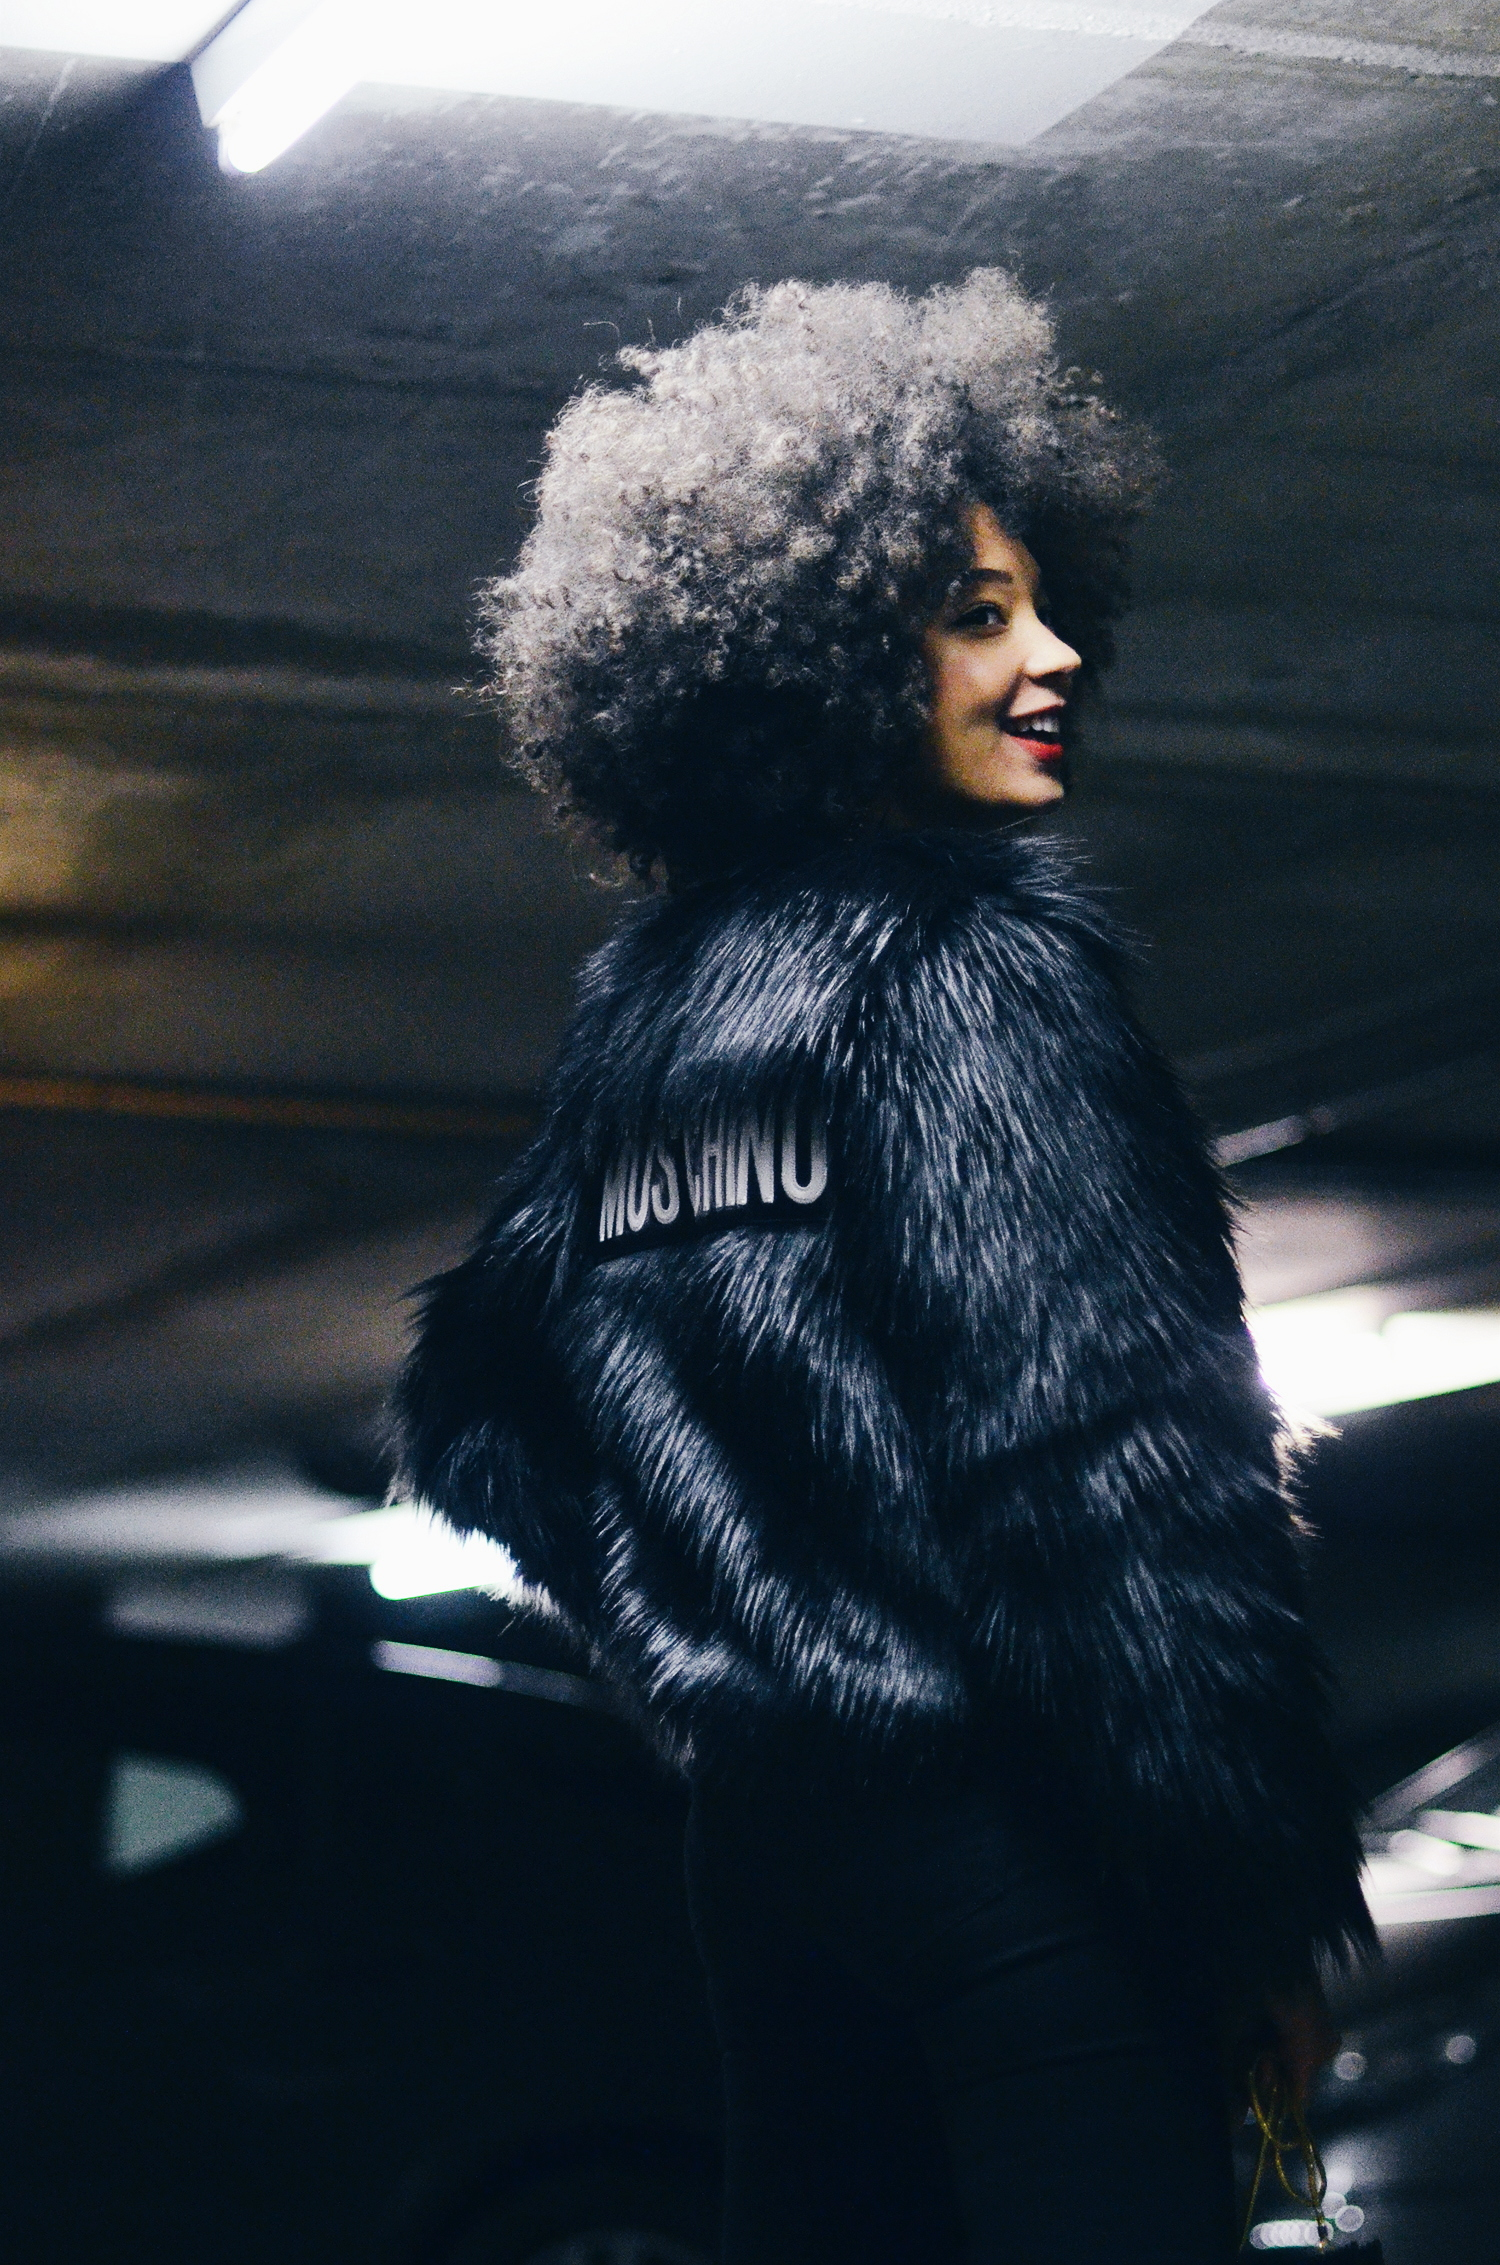 mercredie-blog-mode-fashion-blogger-suisse-geneve-geneva-switzerland-jacket-fur-fake-hm-tv-moschino-collection-afro-natural-curly-hair